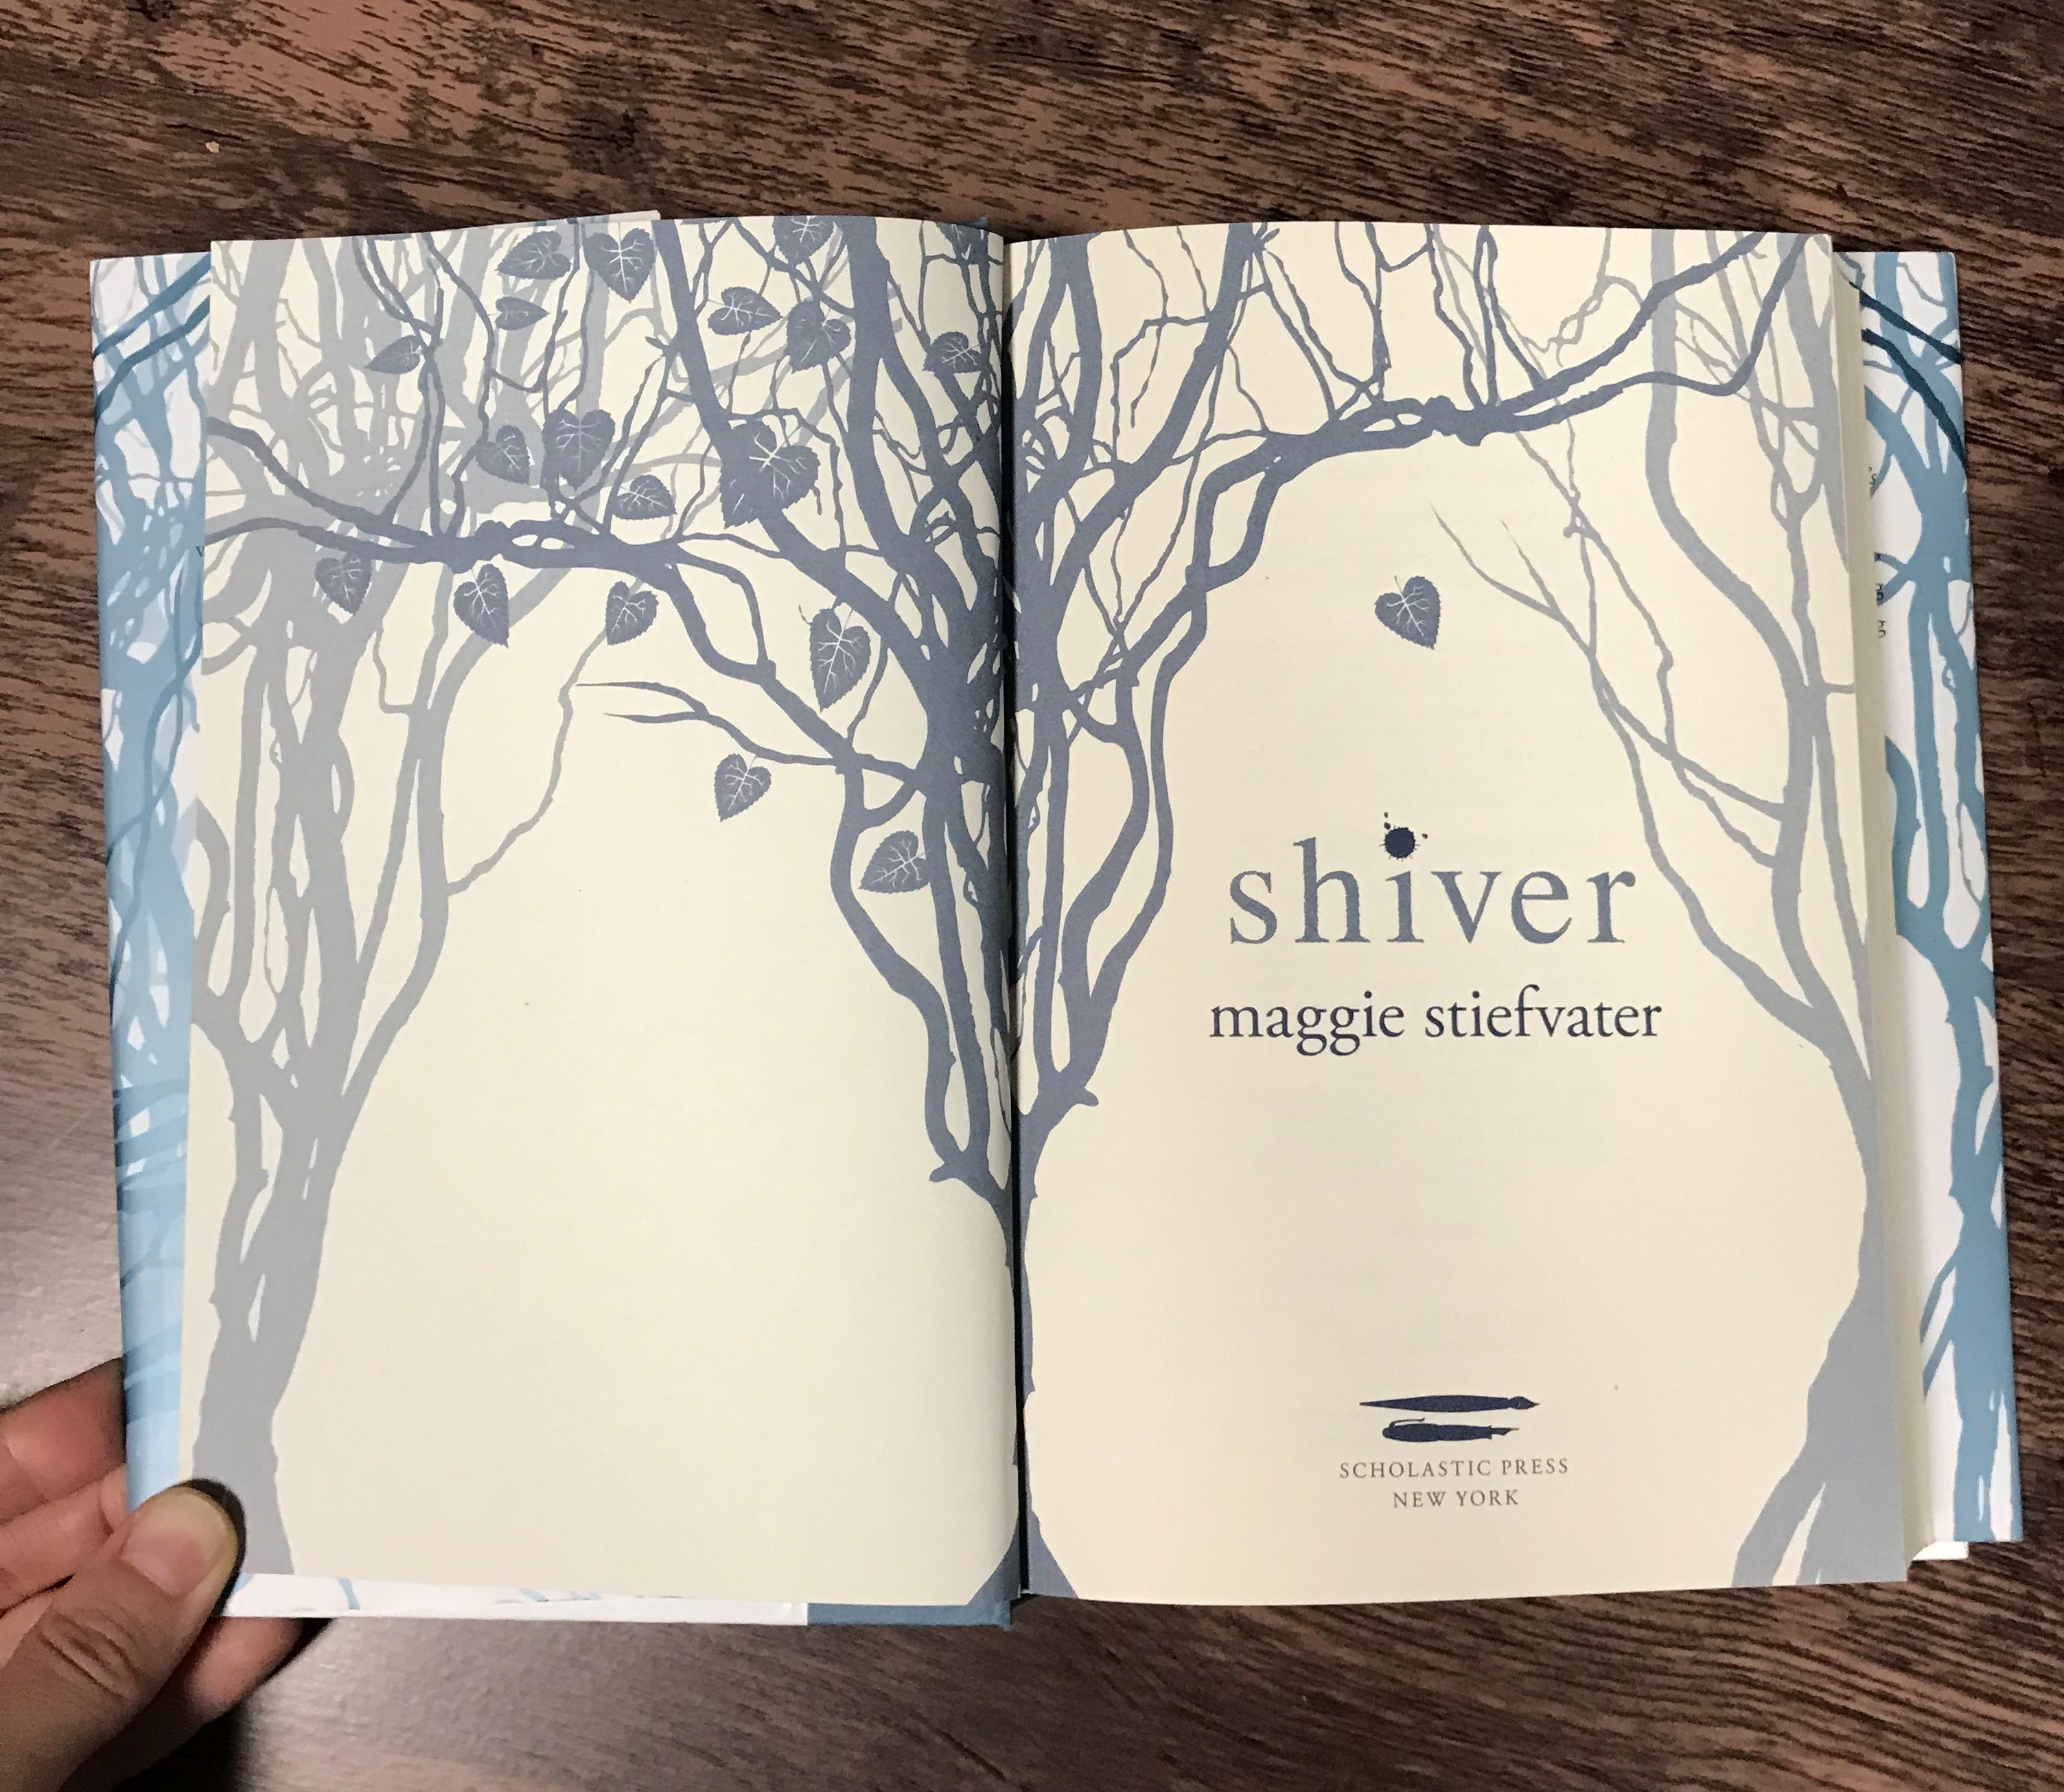 Shiver Stiefvater book review